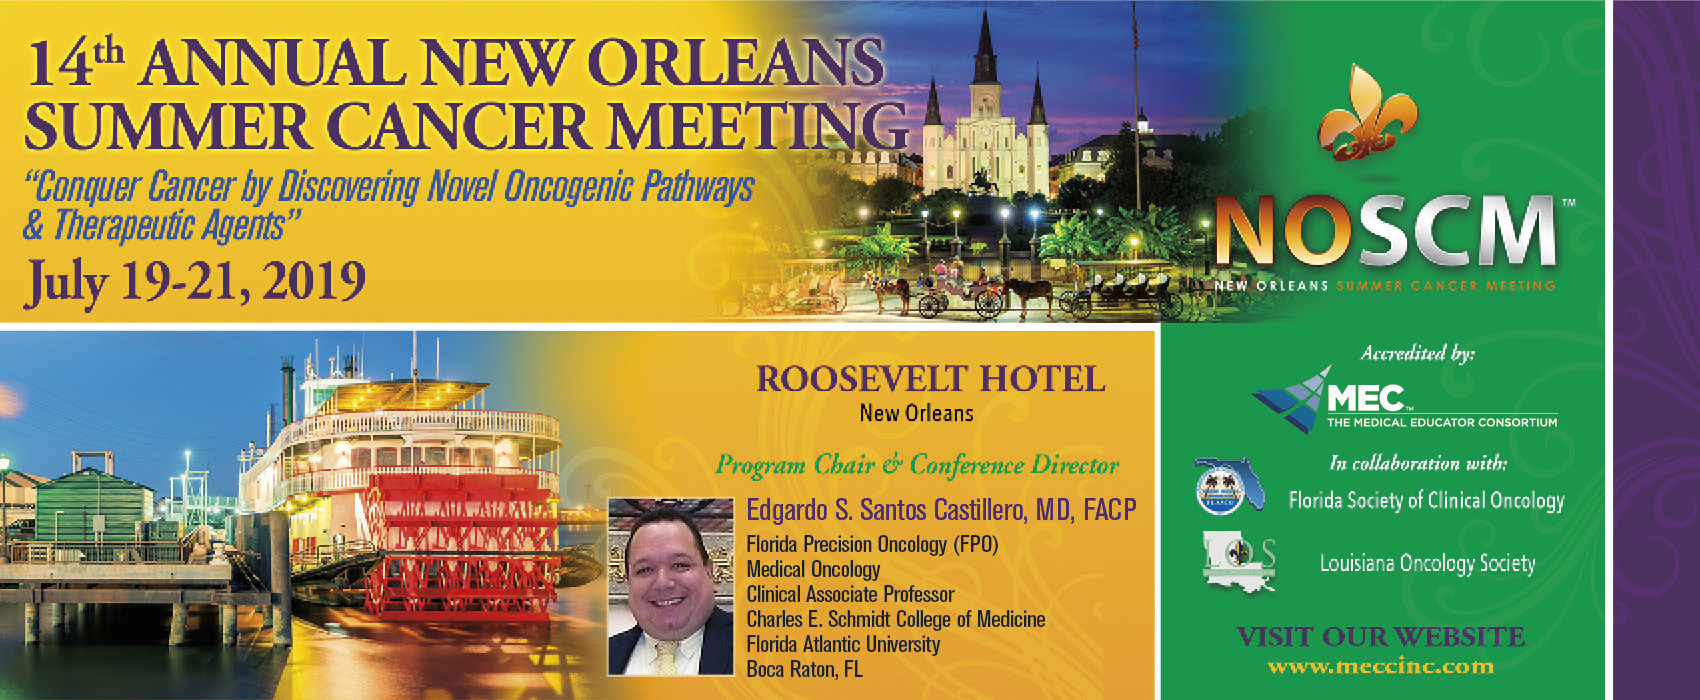 14th Annual New Orleans Summer Cancer Meeting (NOSCM)